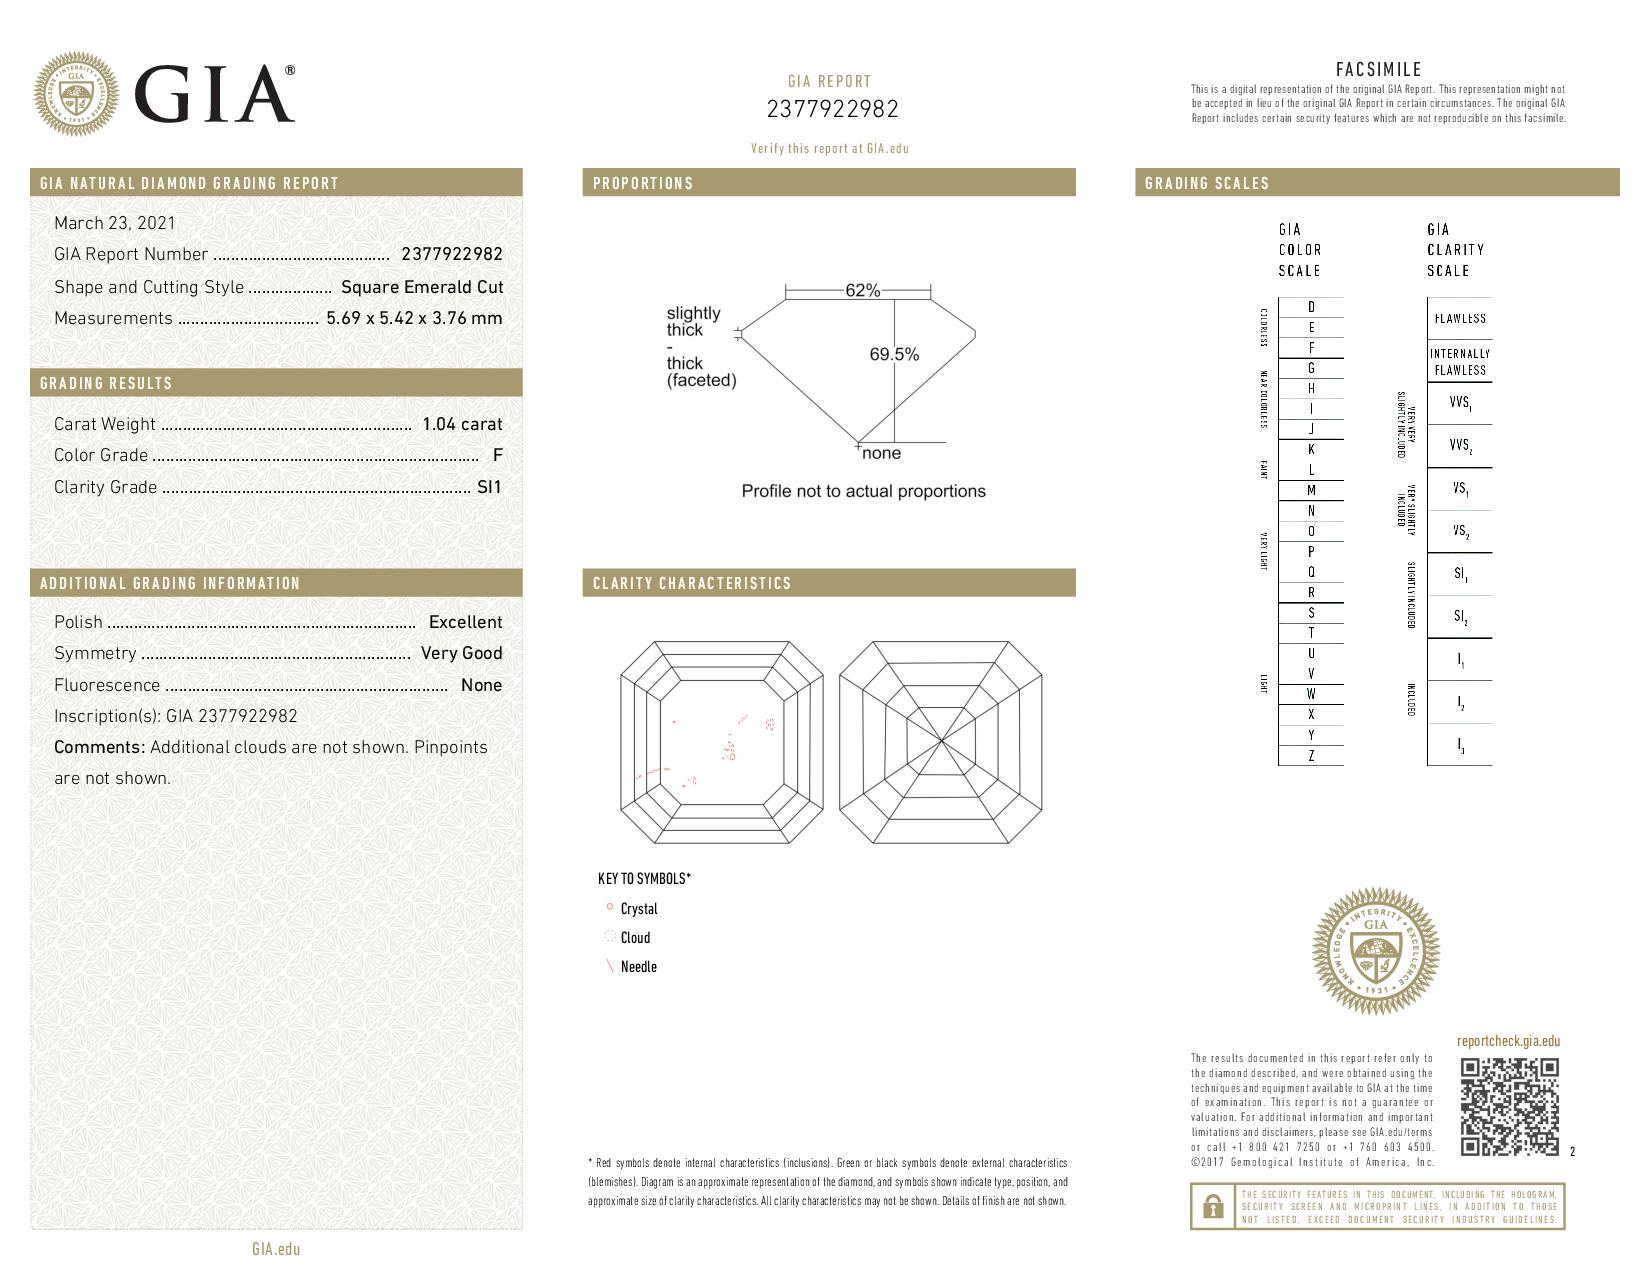 This is a 1.04 carat asscher shape, F color, SI1 clarity natural diamond accompanied by a GIA grading report.